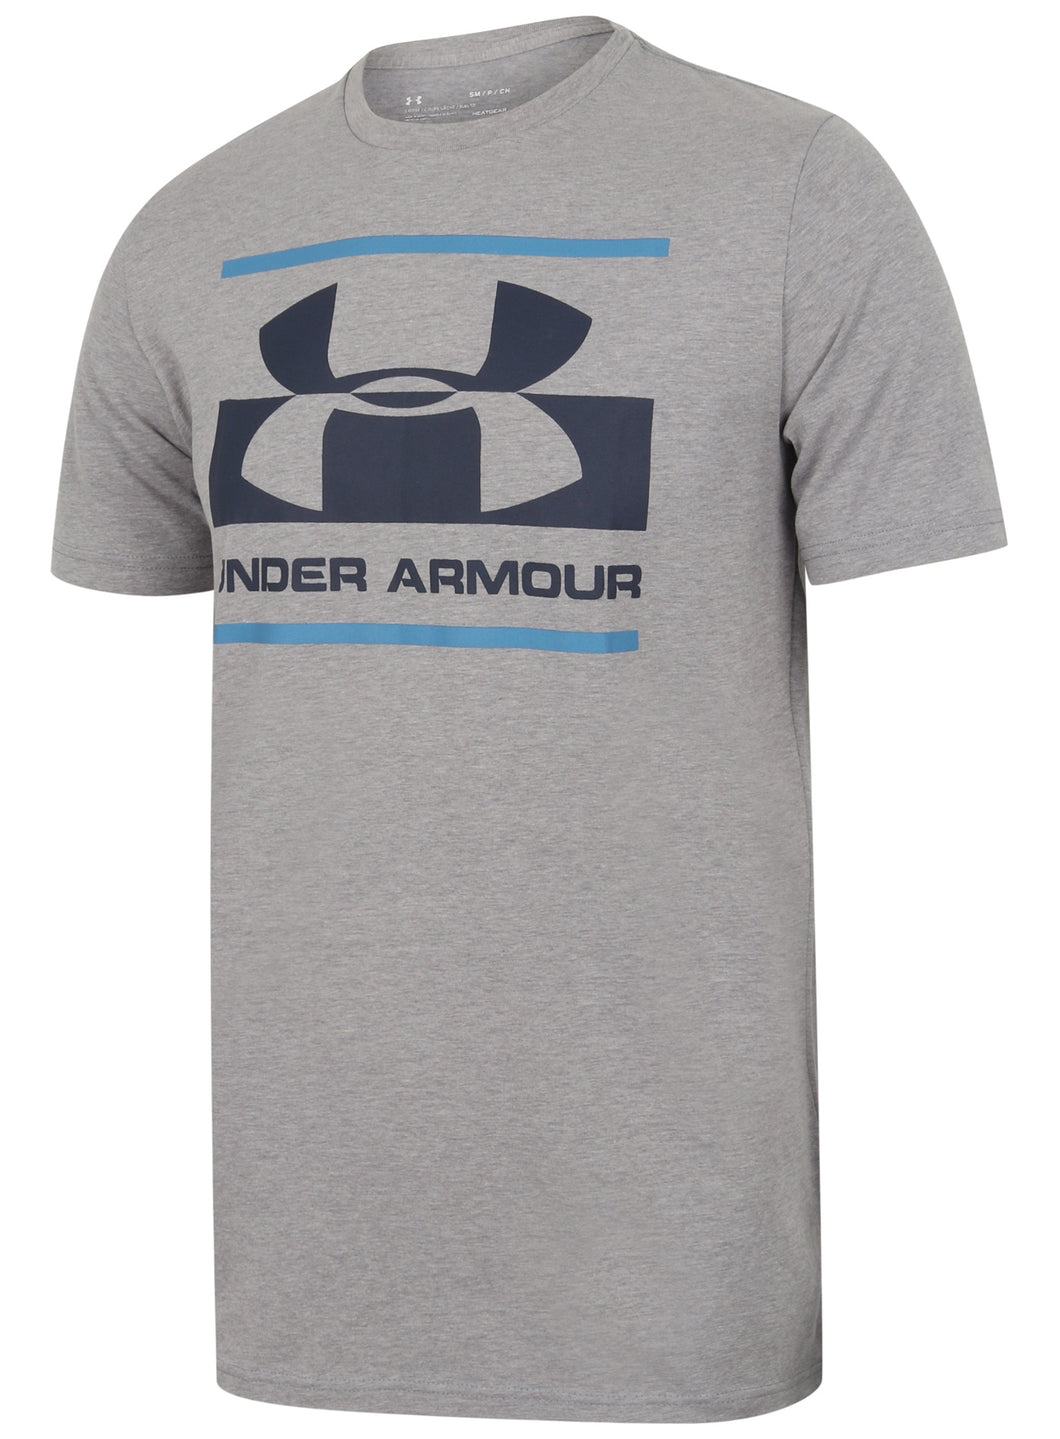 Under Armour Men's Blocked Sportstyle Logo Cotton Crew T-Shirt - 1305667-035 - Grey Front